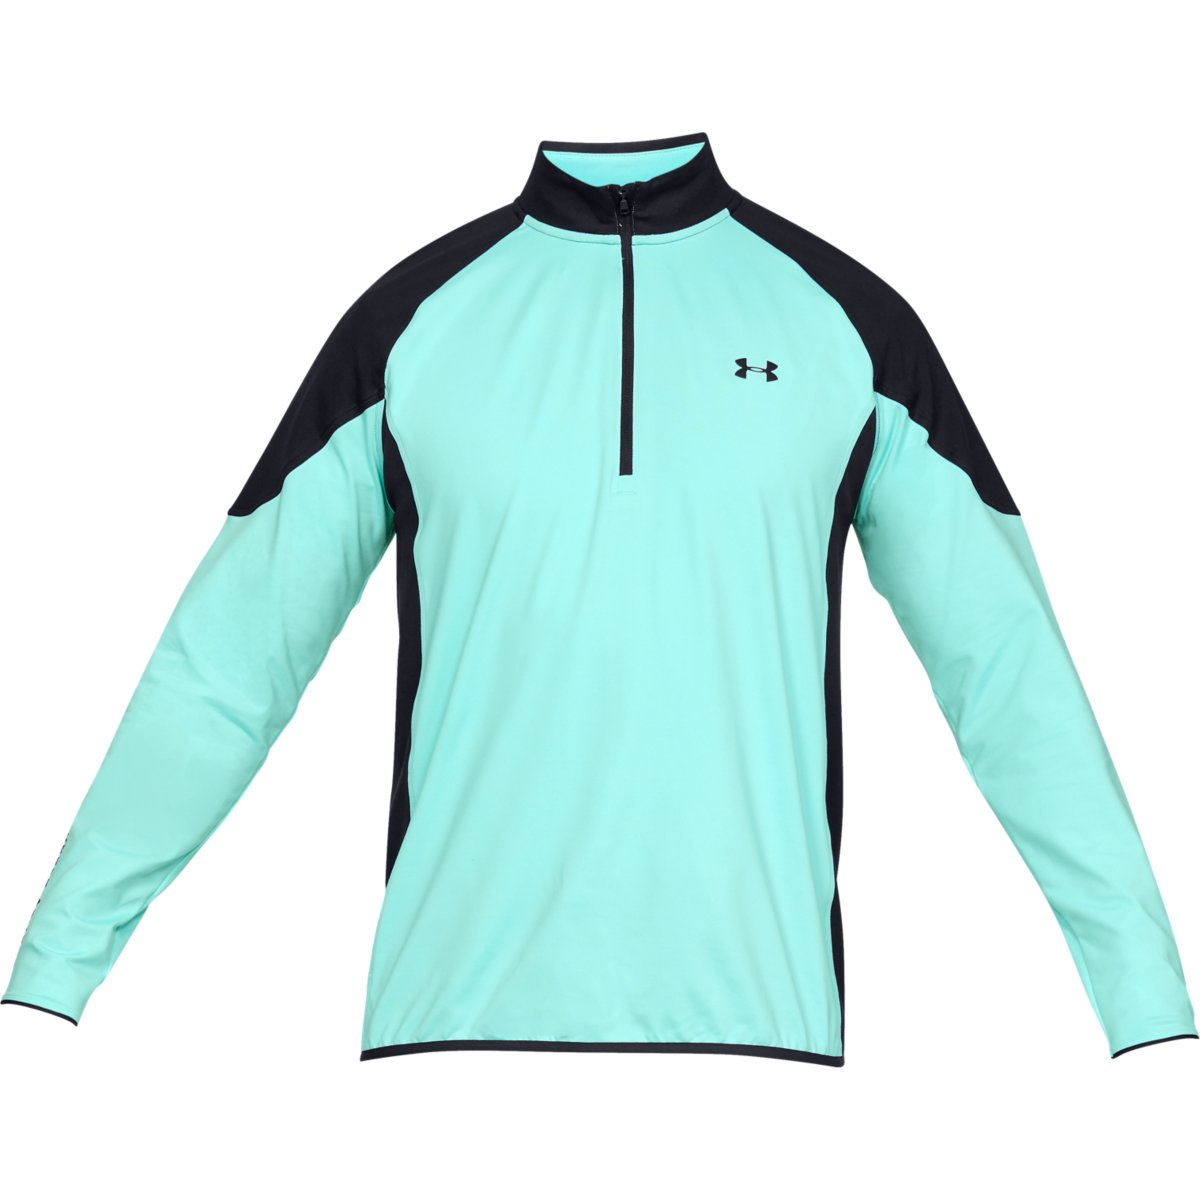 Under Armour Storm Midlayer Neo Turquoise - XL